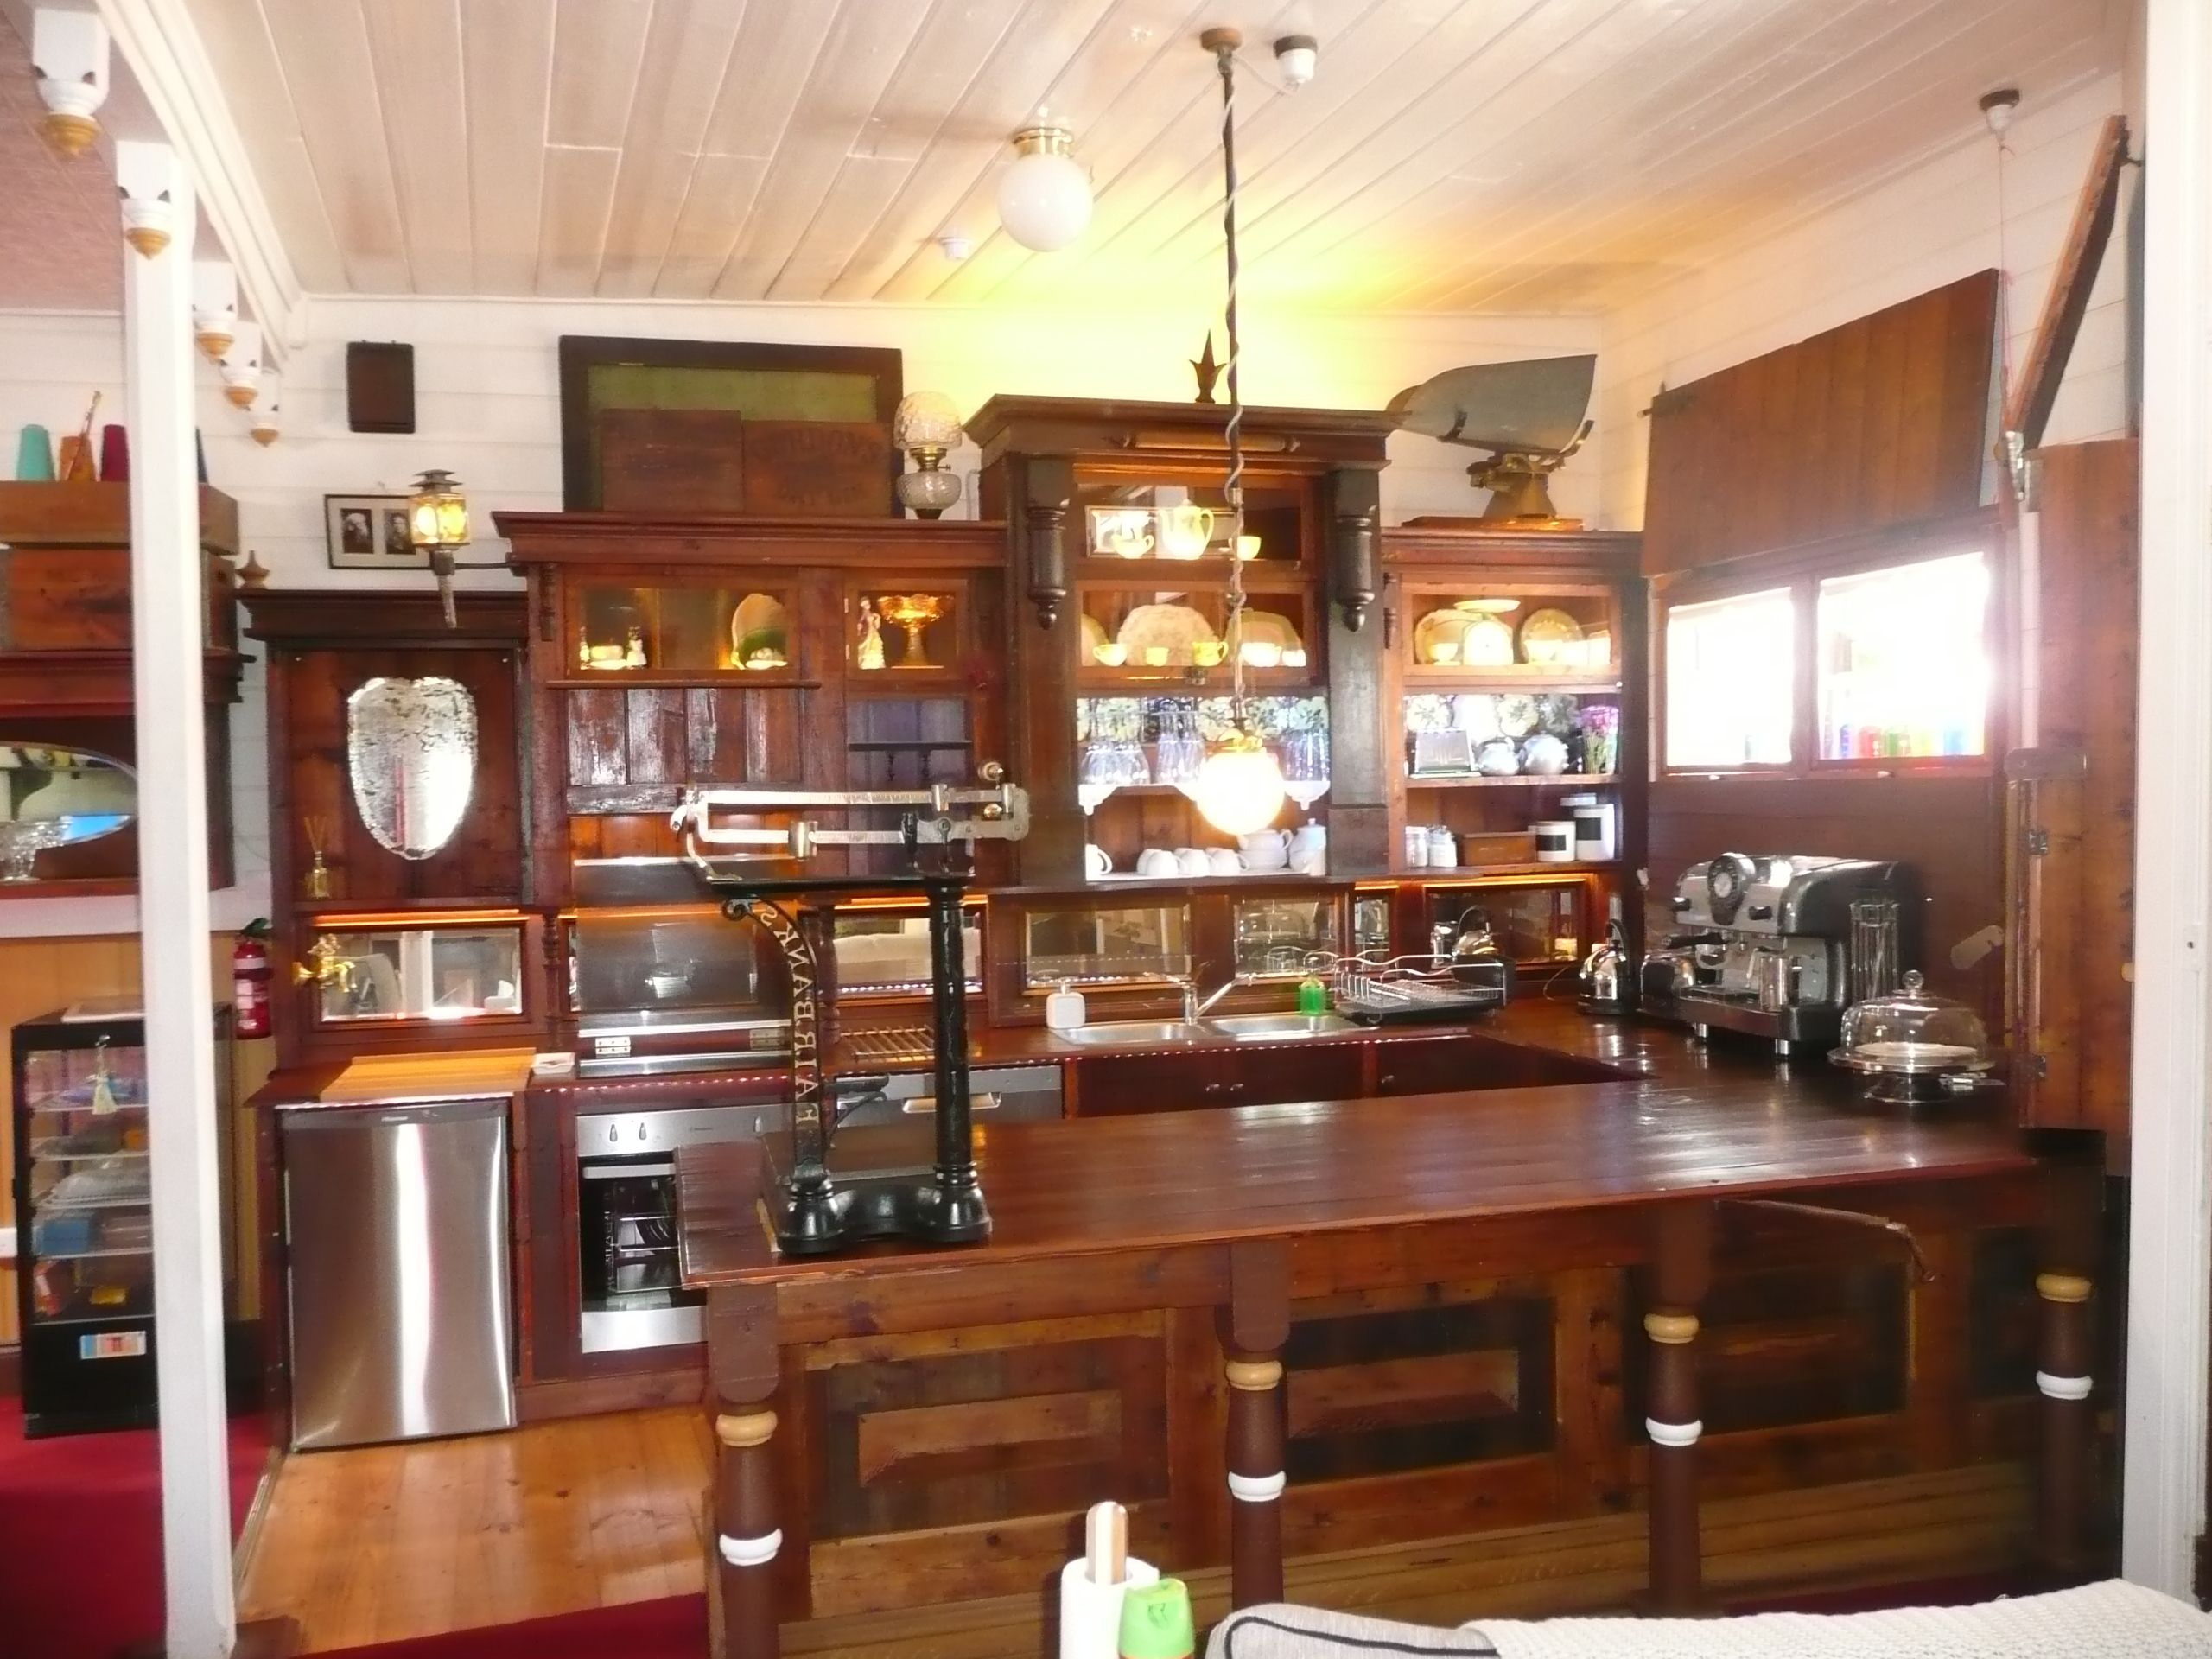 Kitchen Stores Home Designs Time Travel To The A Beautiful 19th Century Vintage Store Counter Remodeled House